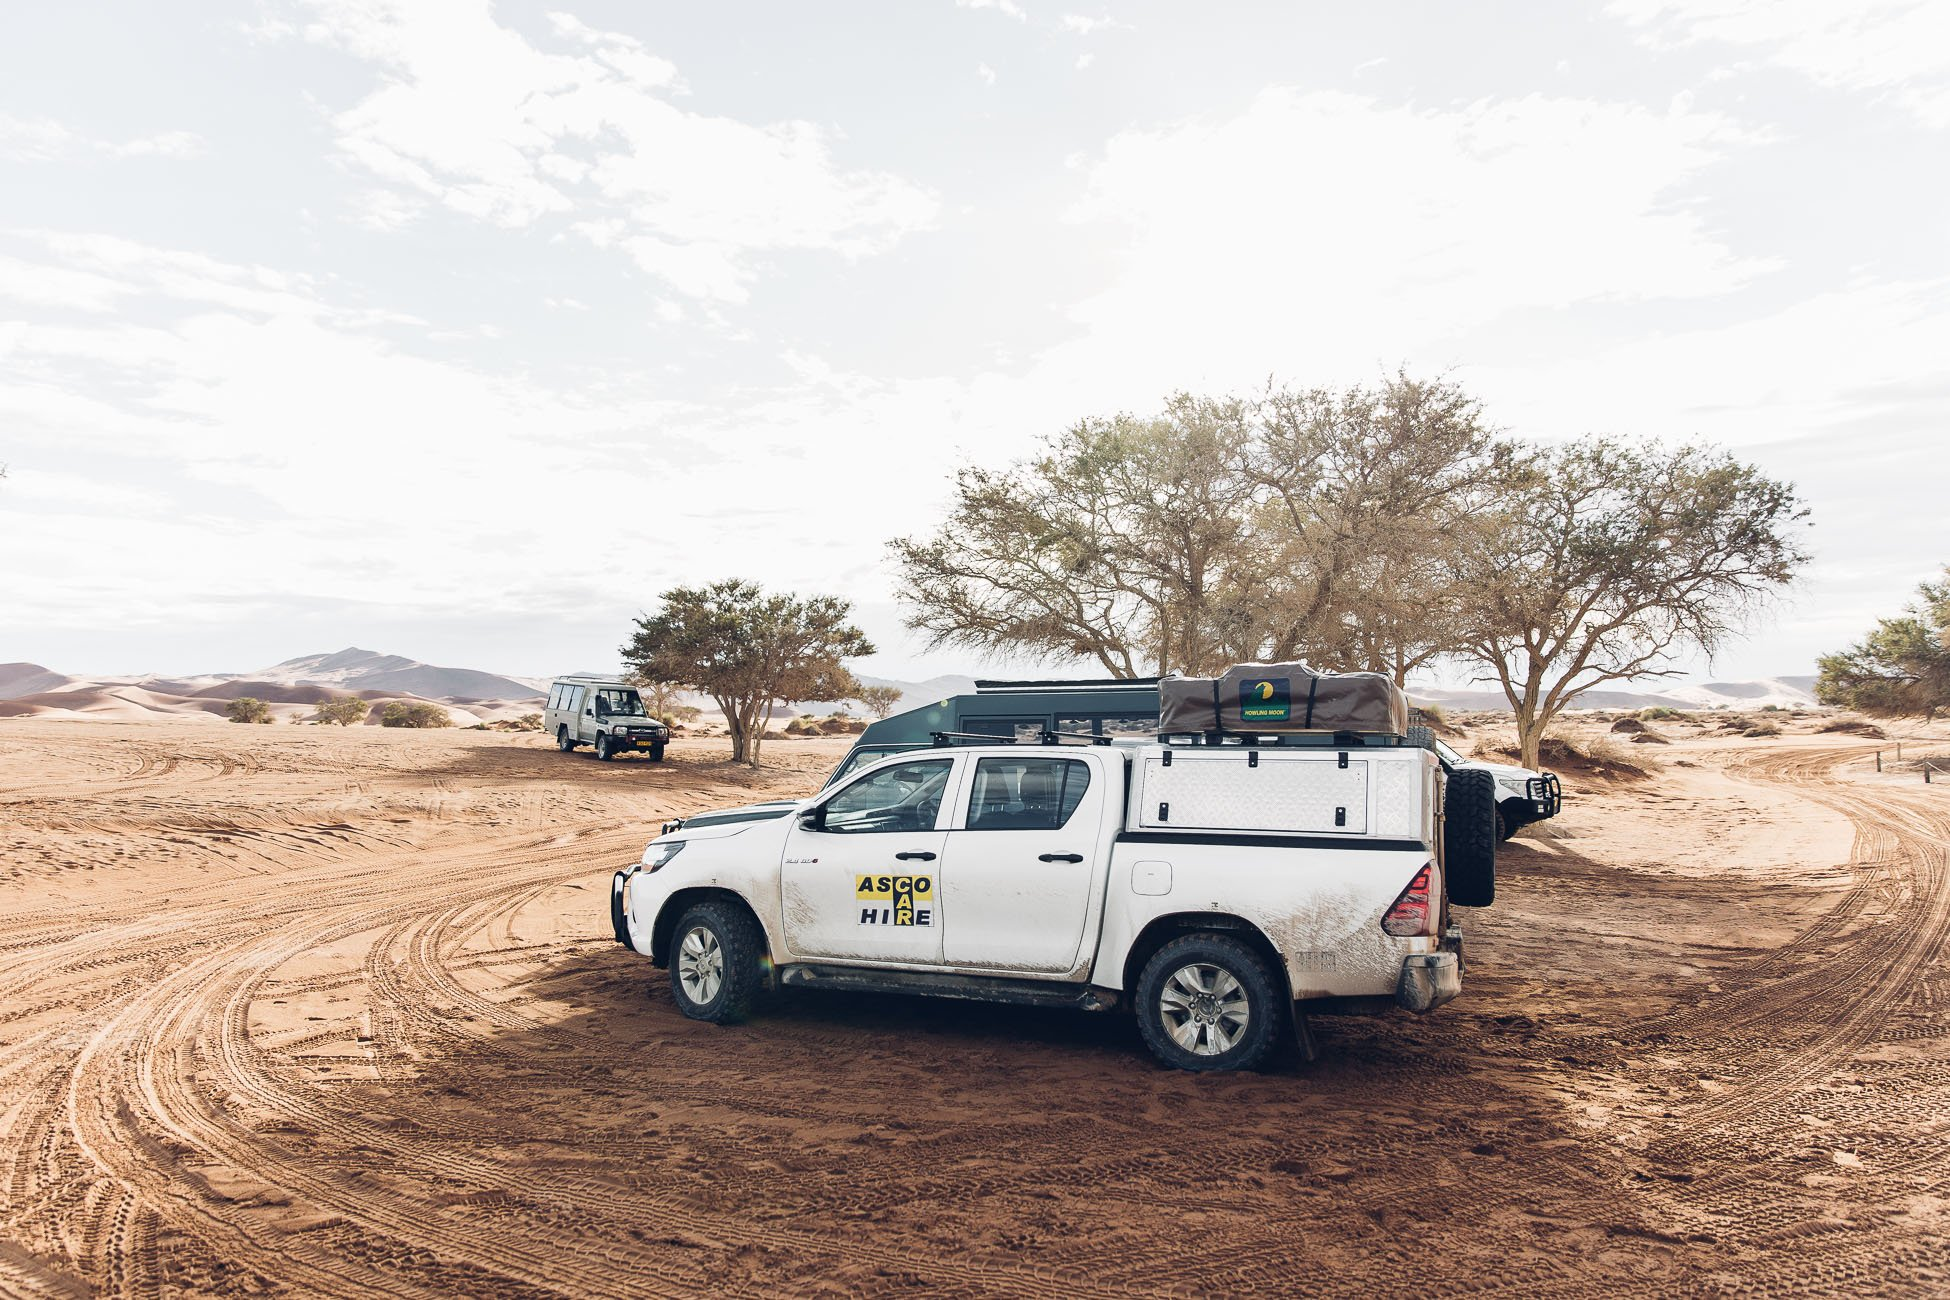 ASCO Car hire Namibia